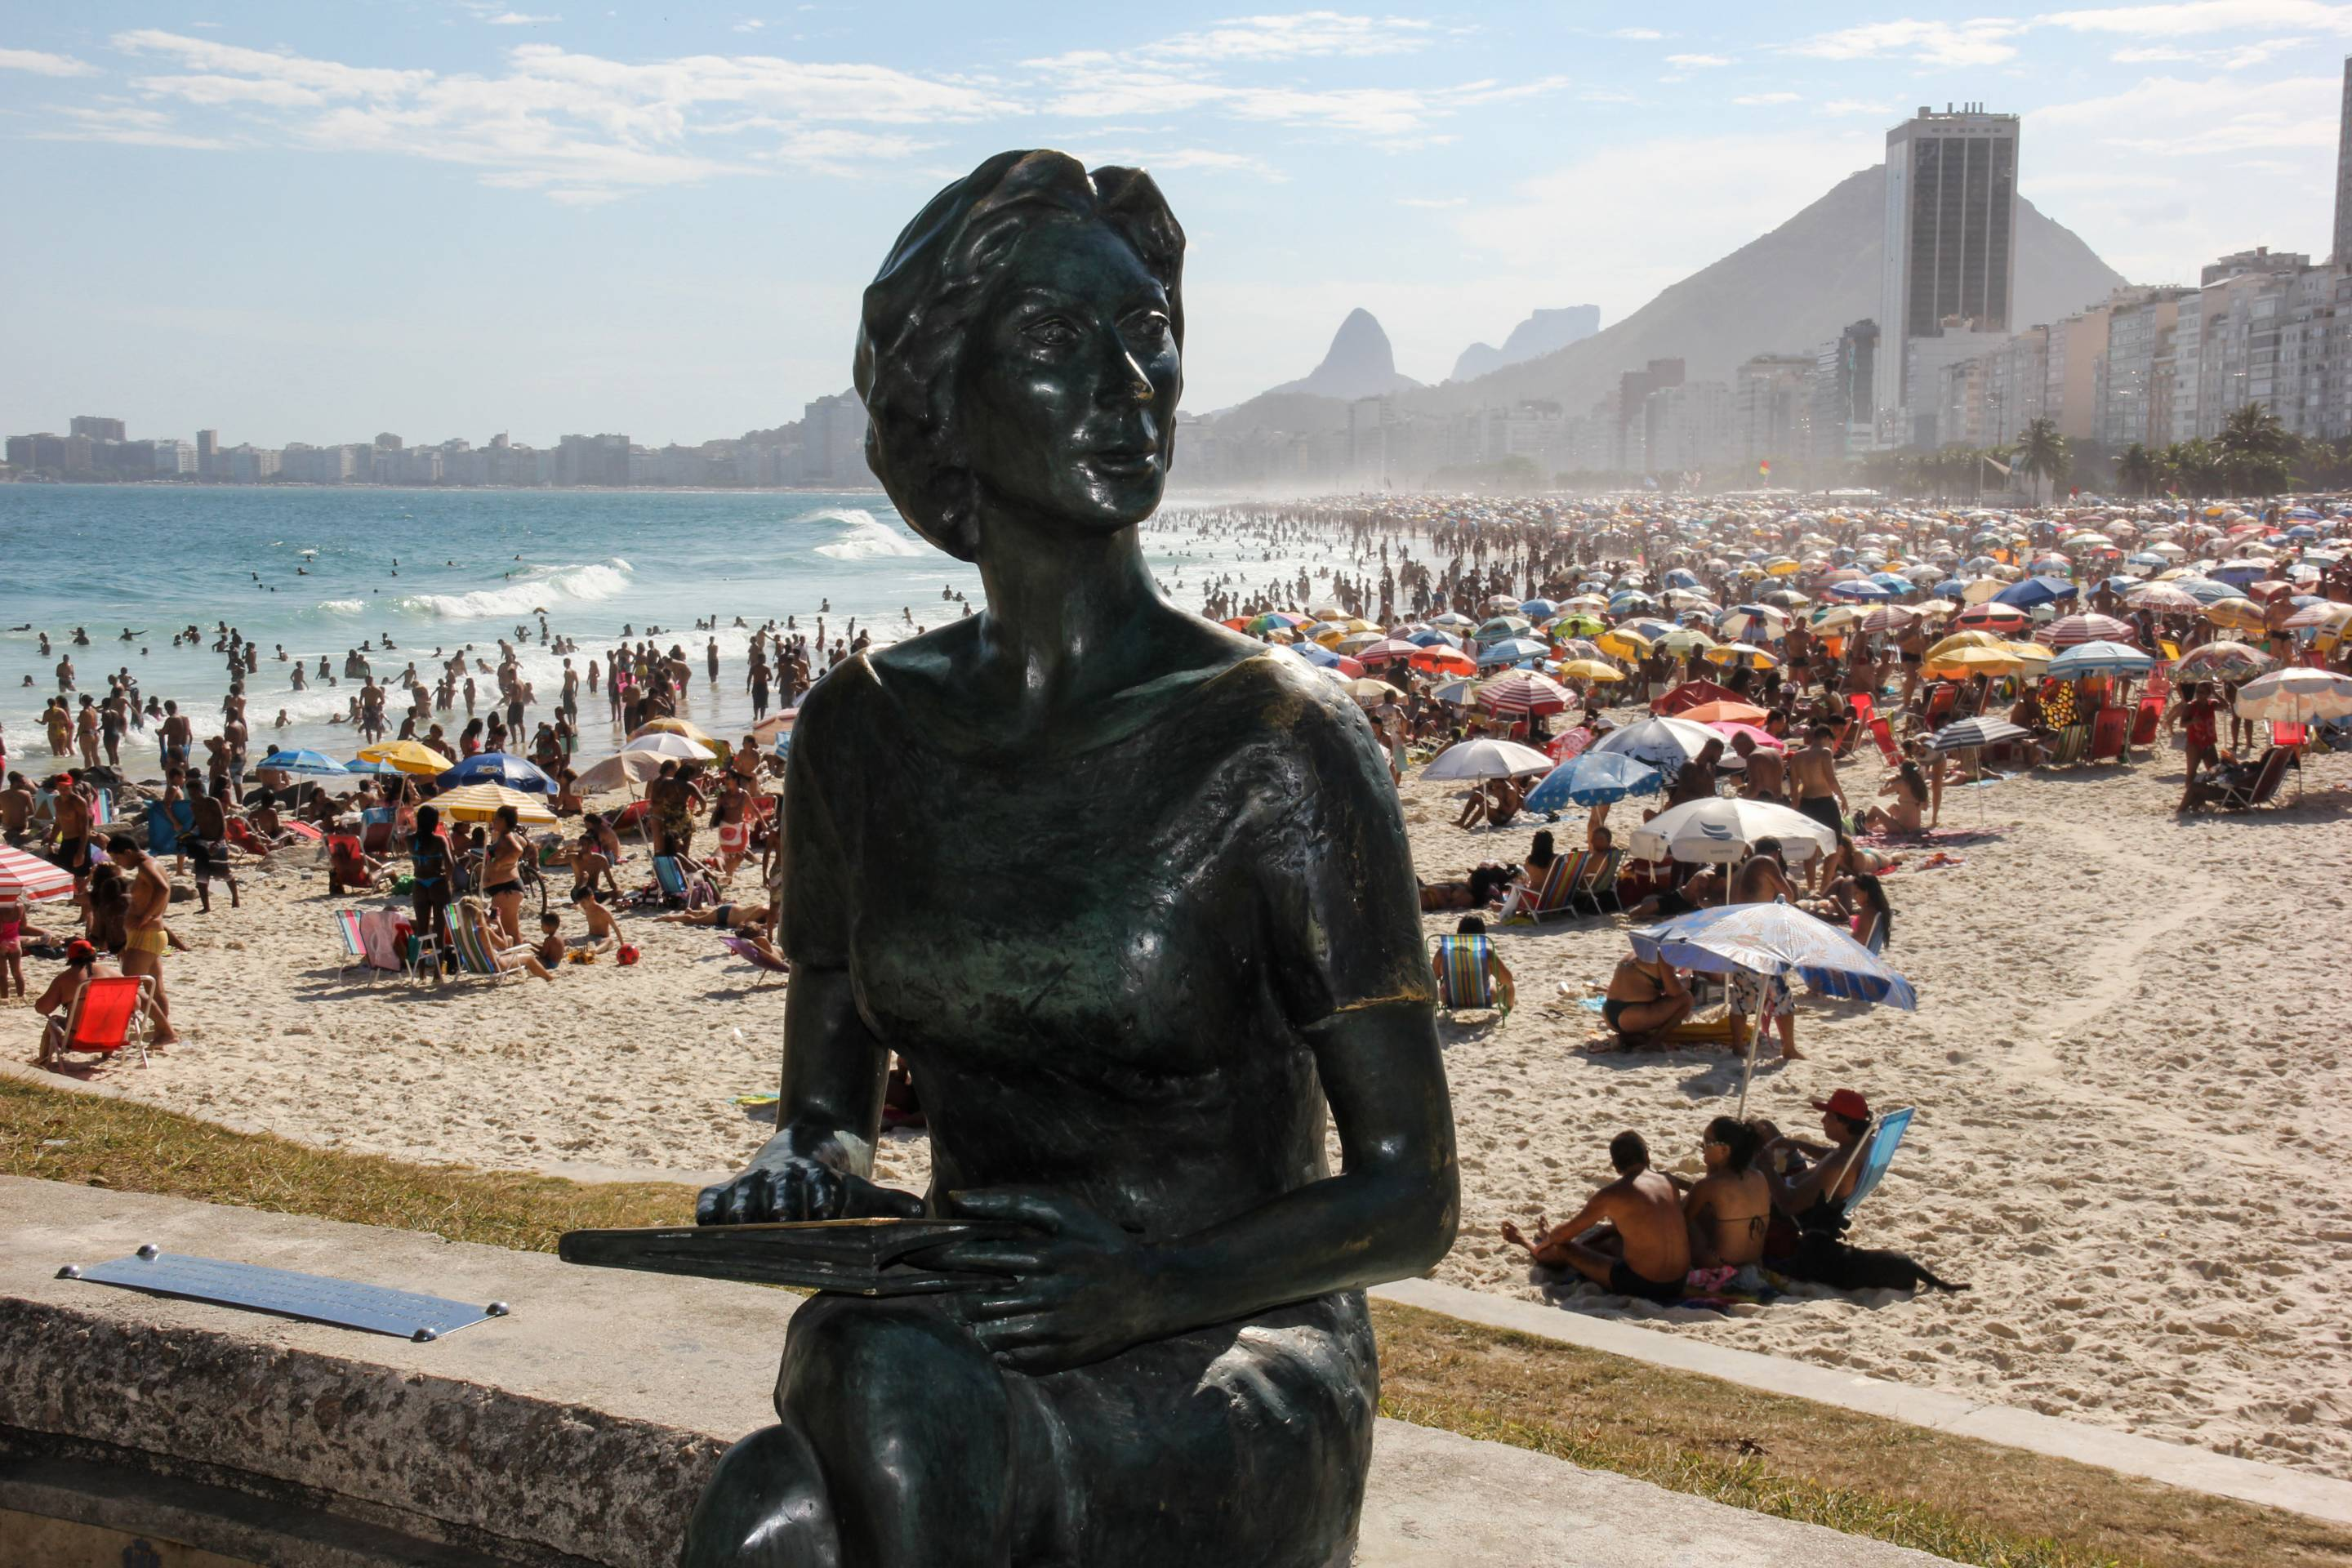 Beaches of Rio de Janeiro are crowded with sunbathers before the begin of summer